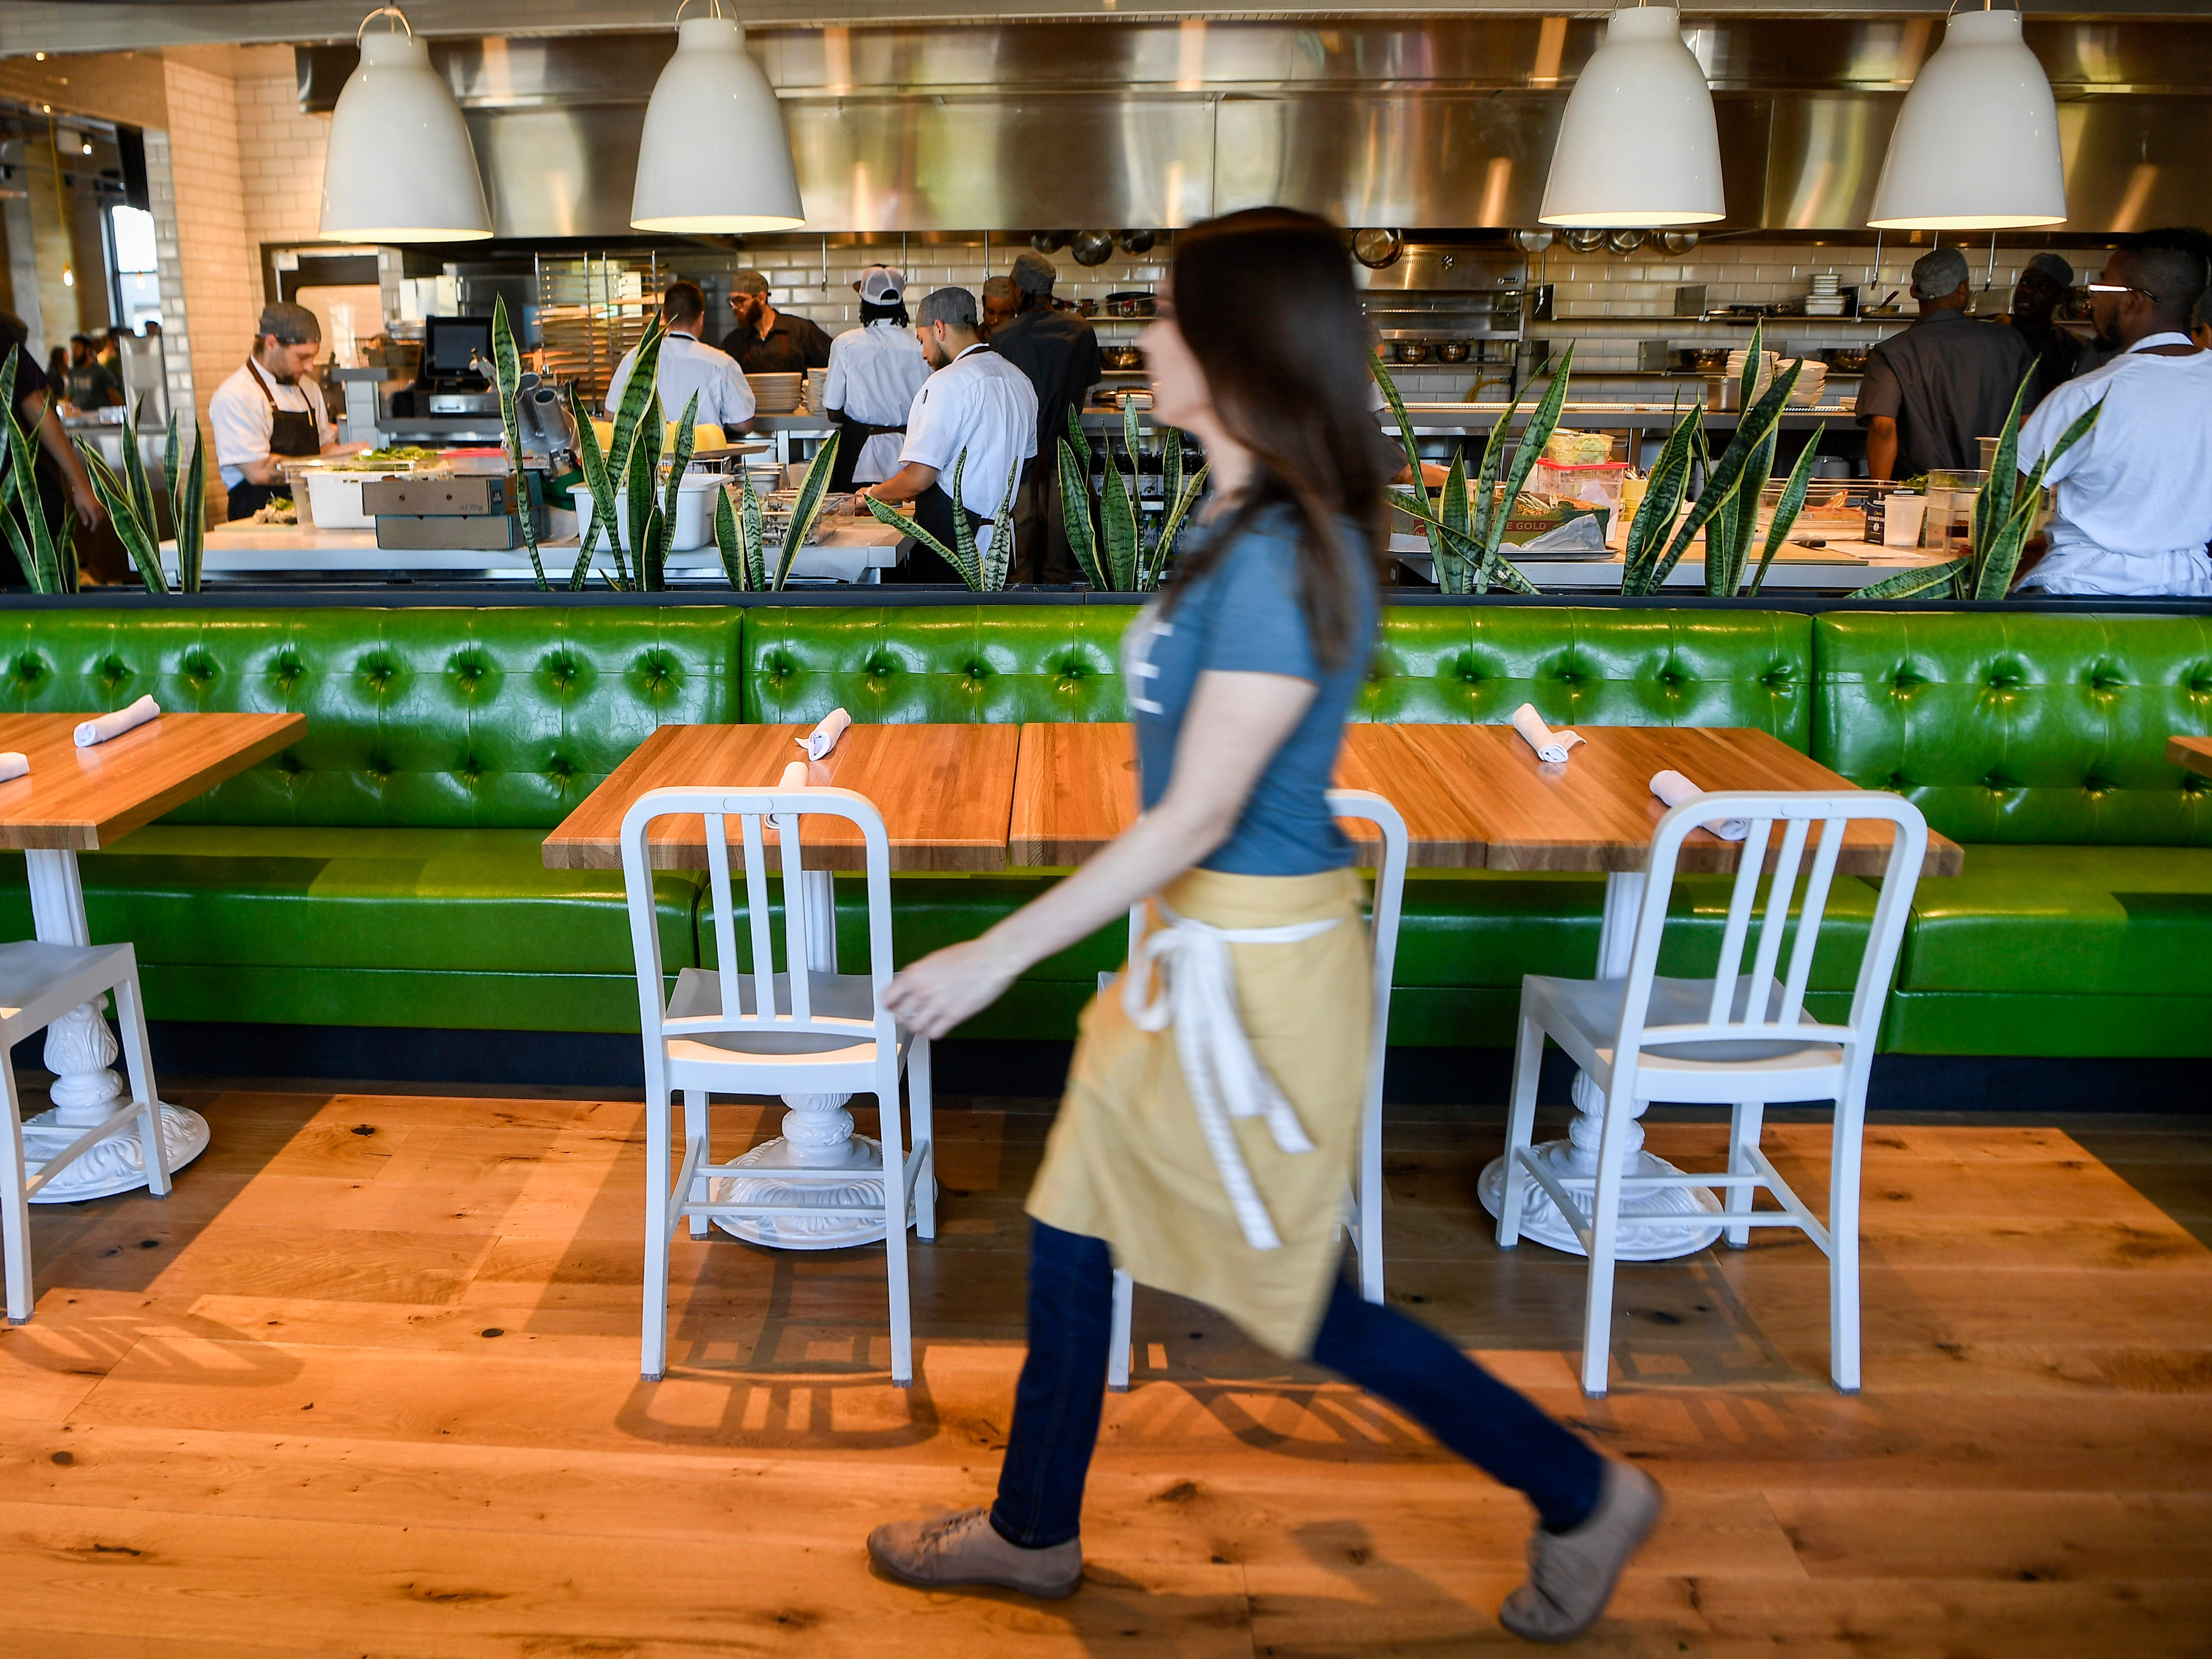 Workers are trained at the new True Food Kitchen in Nashville, Tenn., Thursday, Sept. 20, 2018. Founded in 2008, the True Food KitchenÕs philosophy, backed by Oprah Winfrey is opening in Green Hills this month.